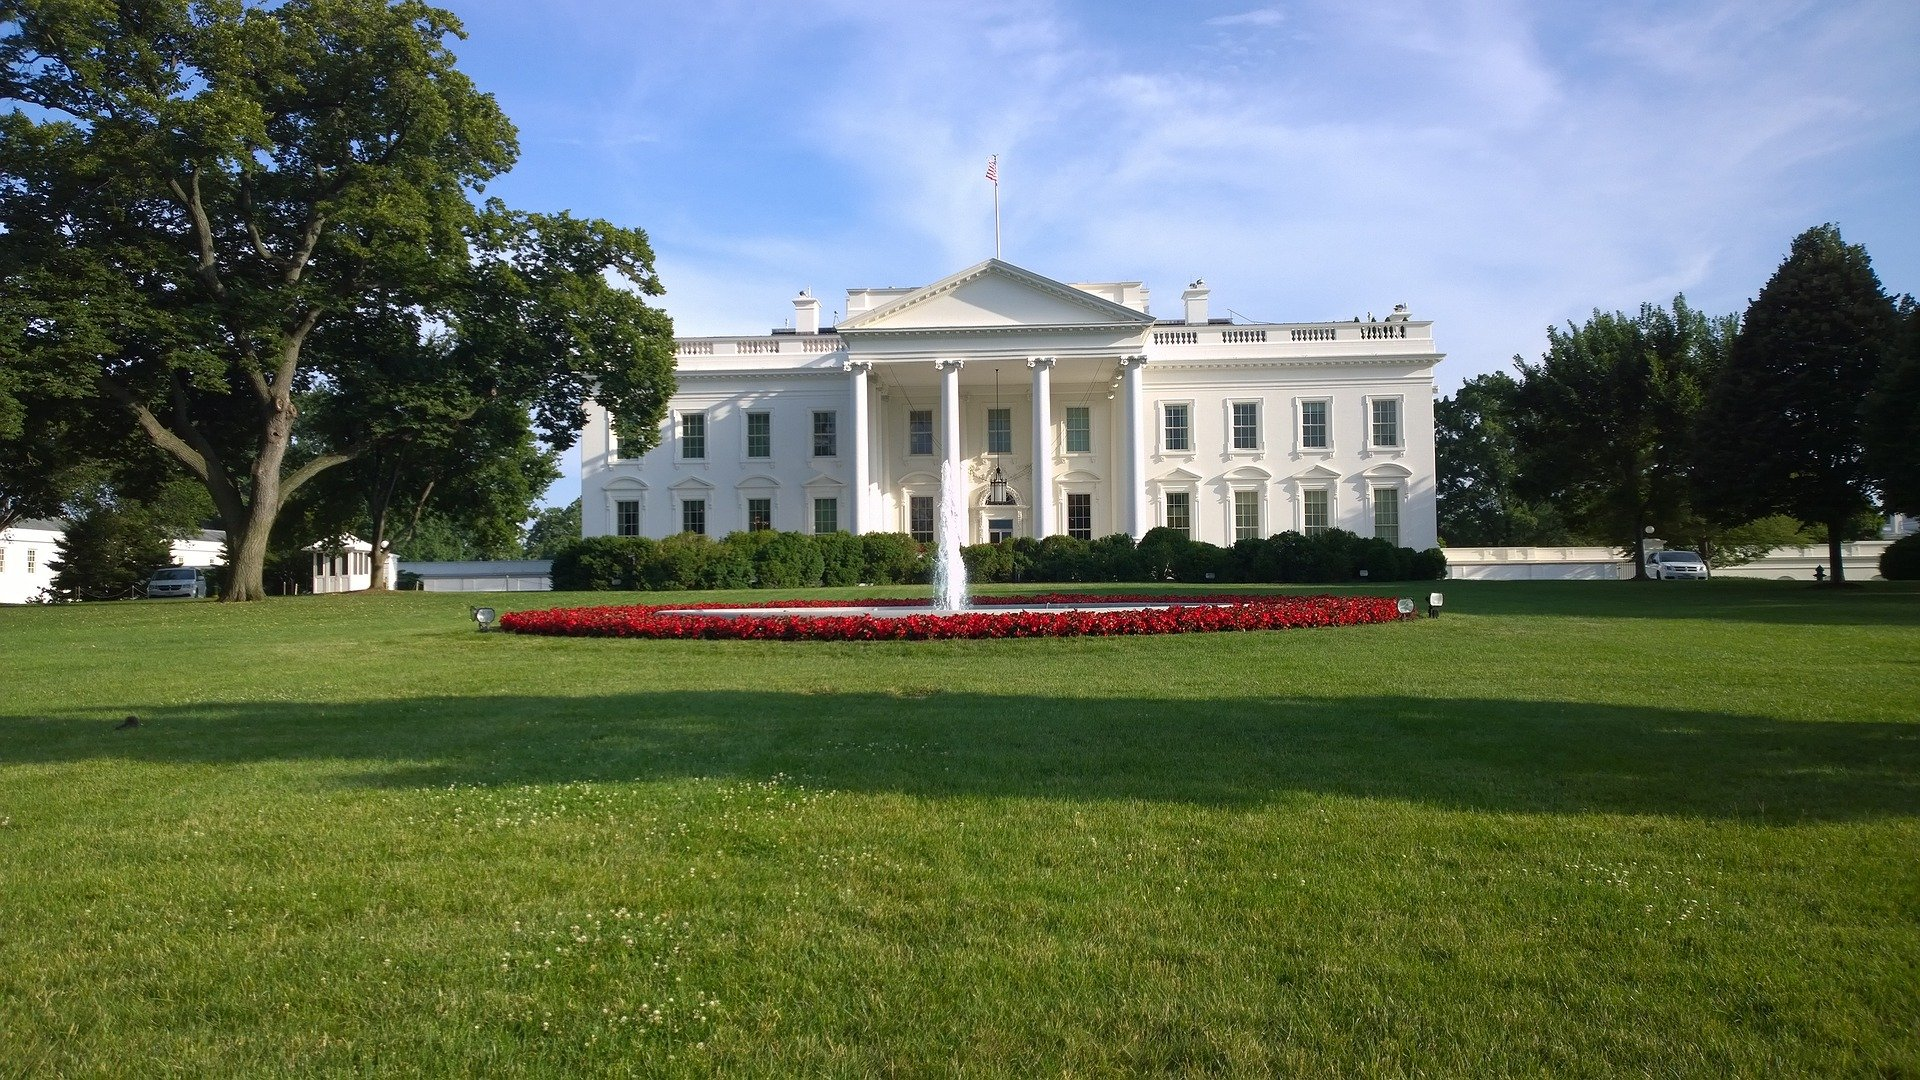 The US President could not believe any house could be bigger than the White House. | Photo: Pixabay/MotionStudios